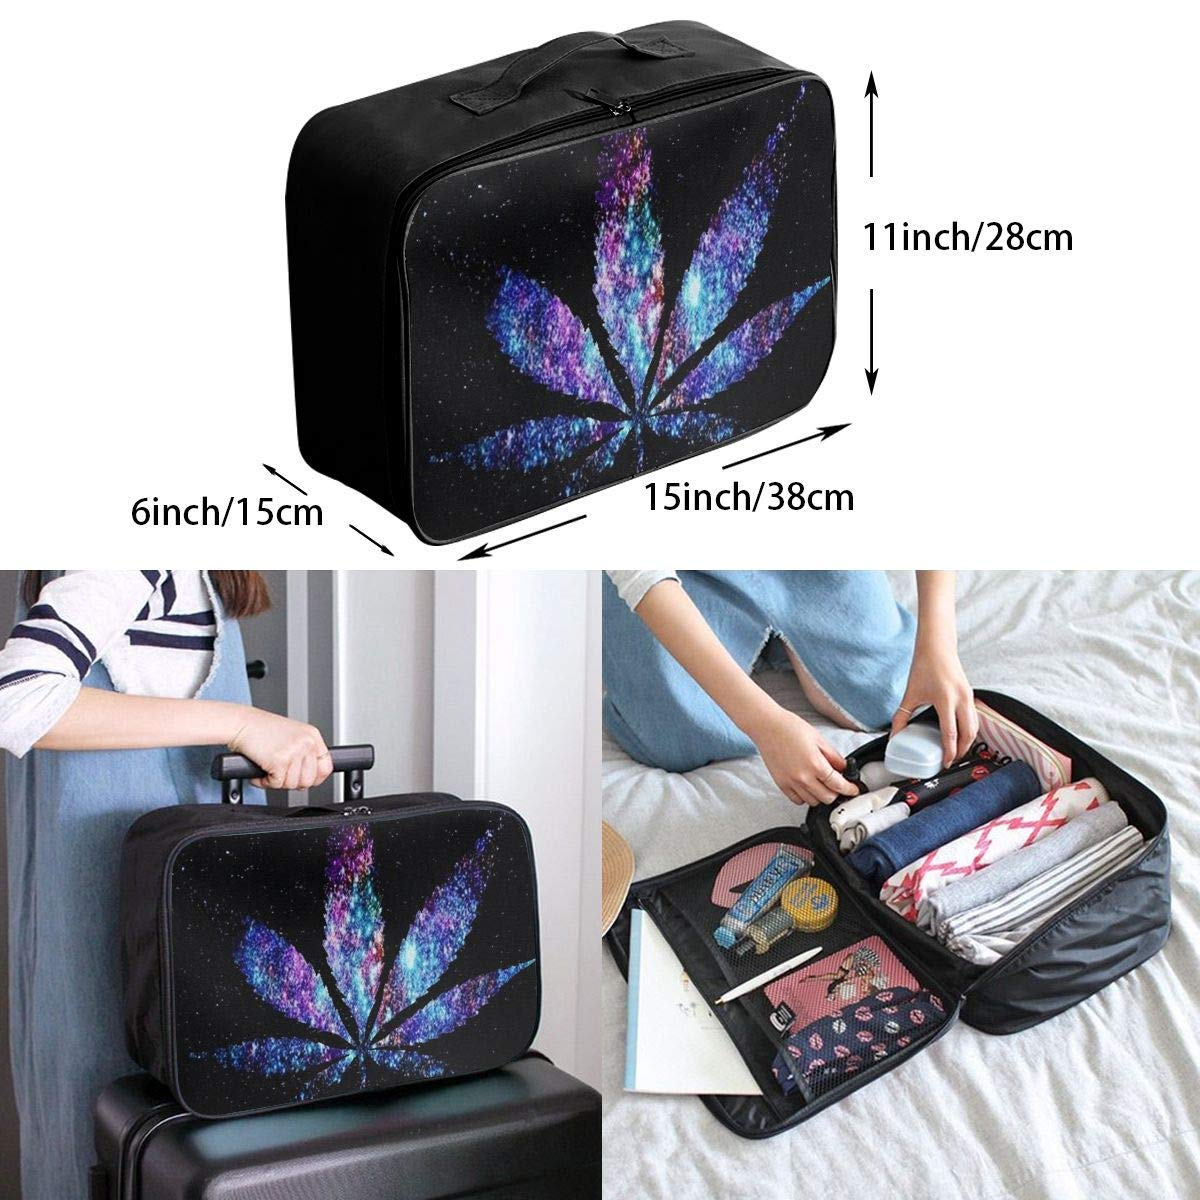 JTRVW Luggage Bags for Travel Lightweight Large Capacity Portable Duffel Bag for Men /& Women Galaxy Purple /& Blue Weed Leaf Travel Duffel Bag Backpack